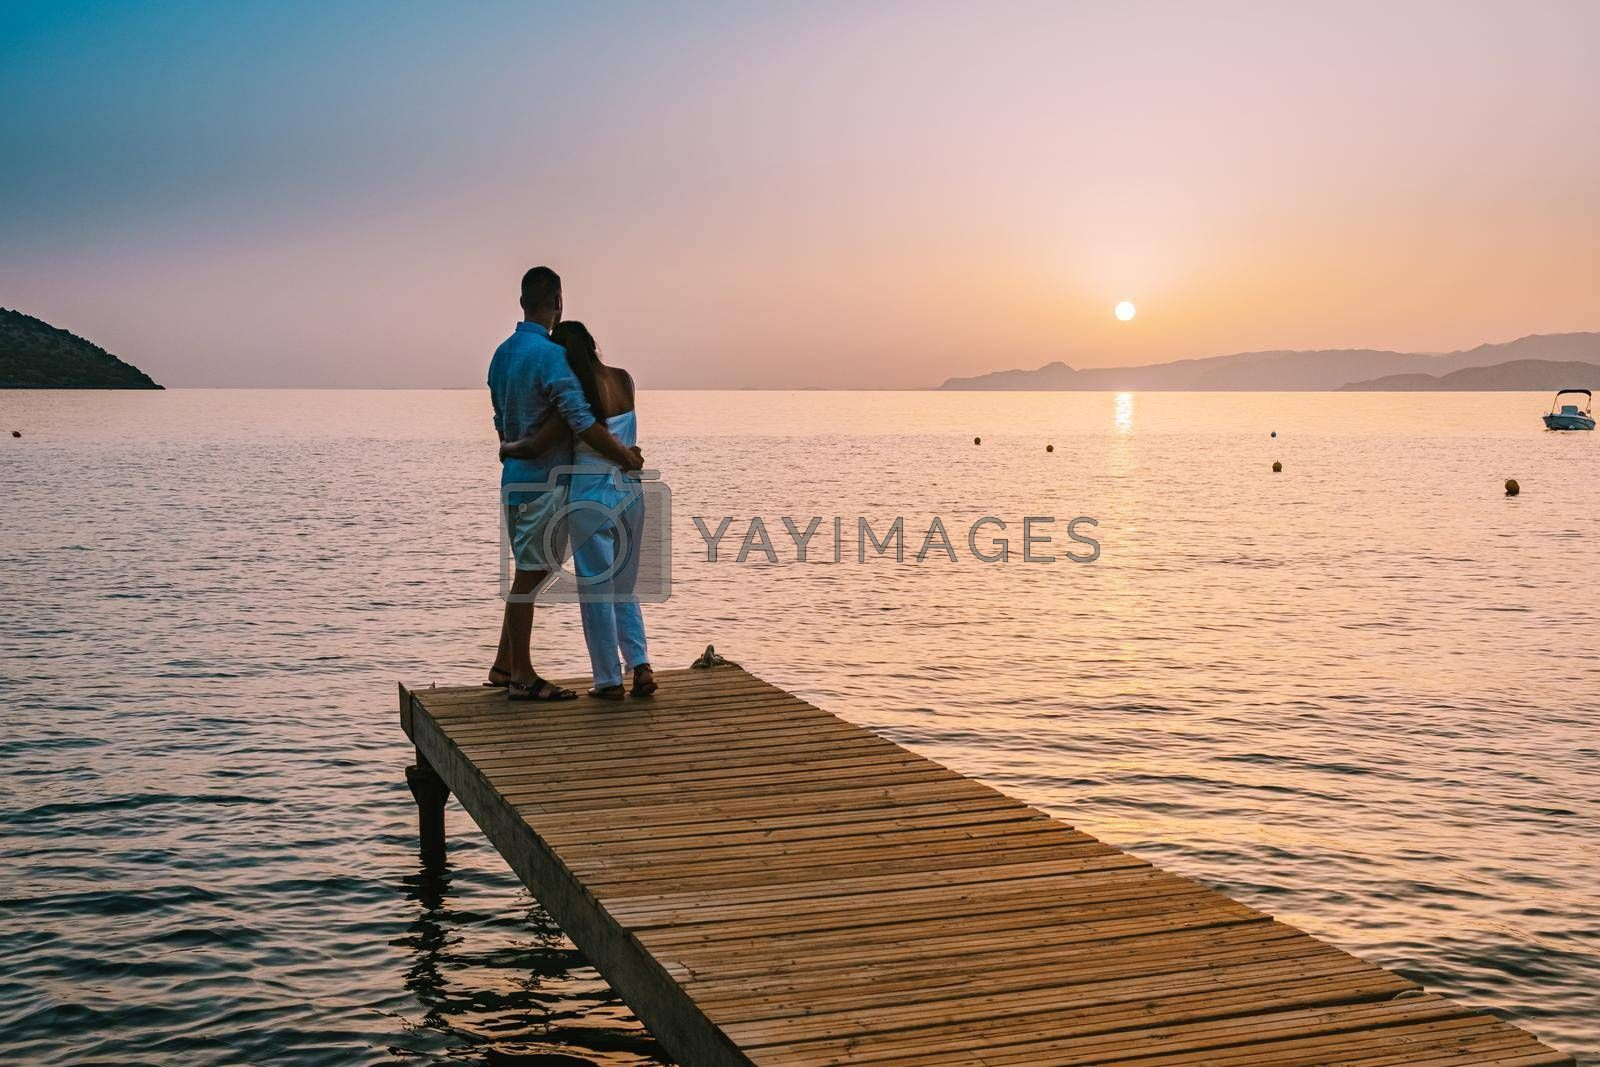 Royalty free image of Crete Greece, young romantic couple in love is sitting and hugging on wooden pier at the beach in sunrise time with golden sky. Vacation and travel concept. Romantic young couple dating at seaside by fokkebok